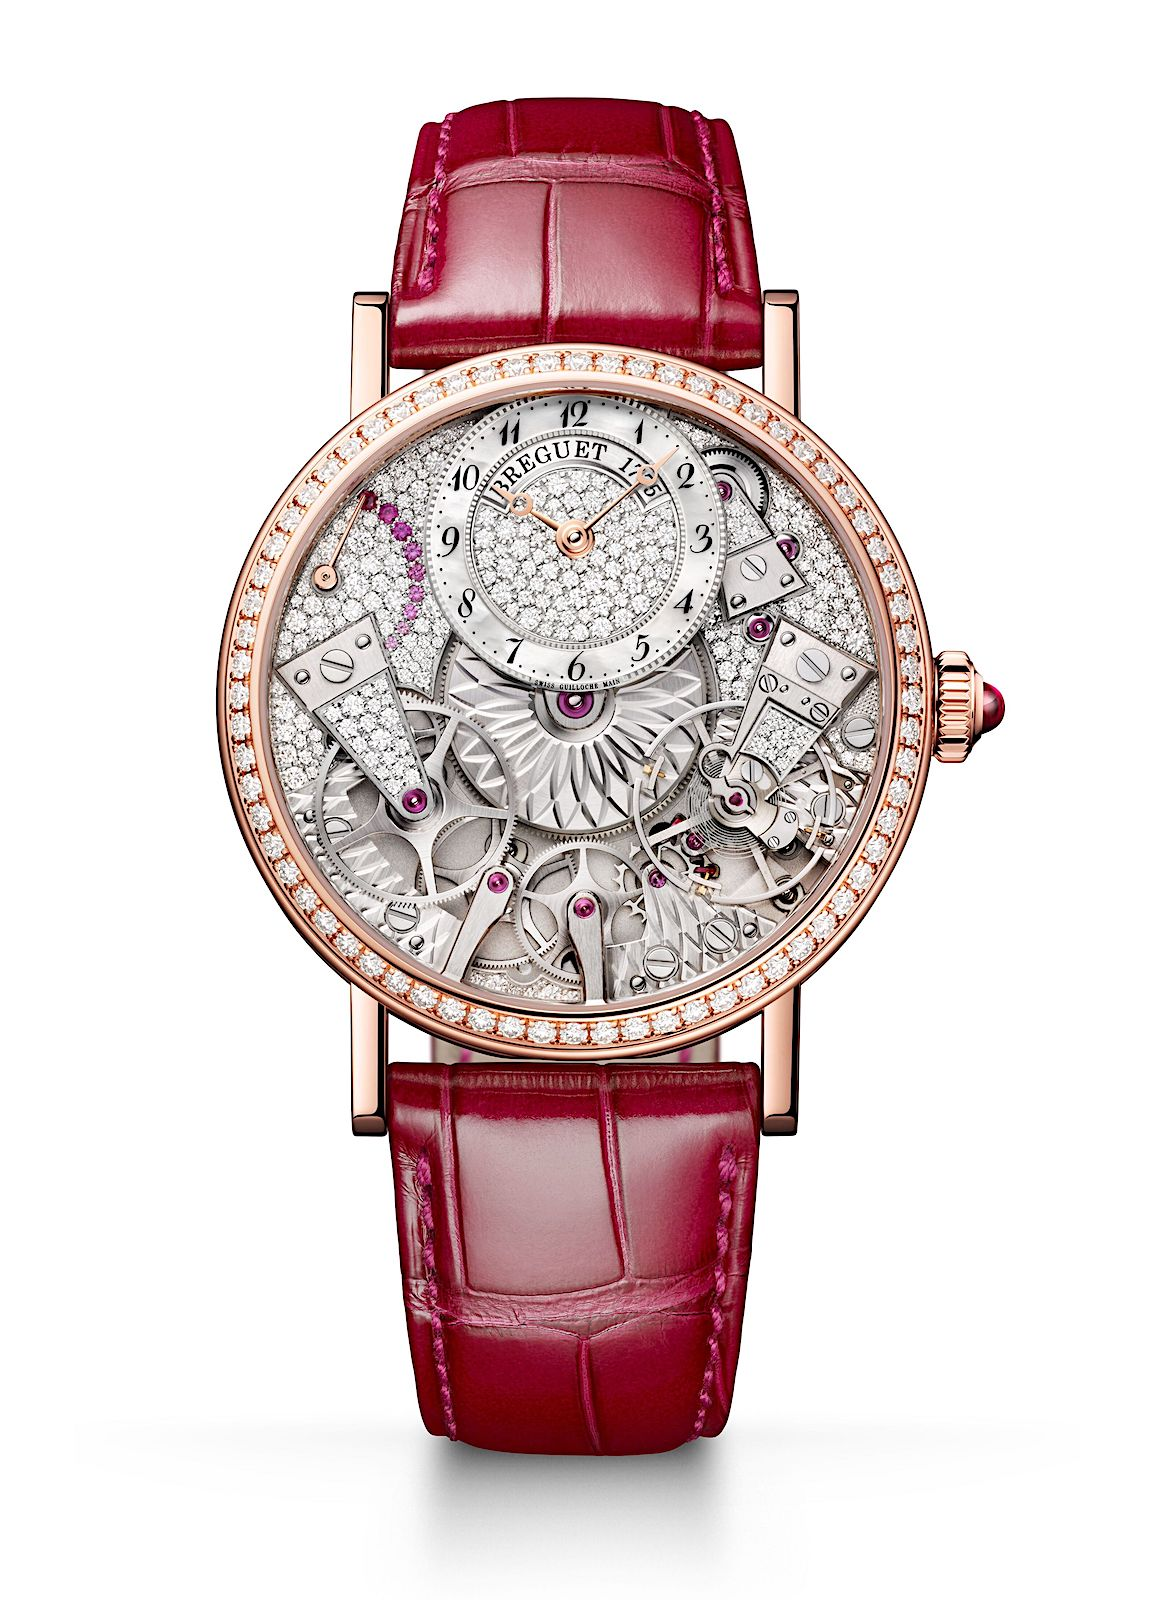 Breguet Tradition 7035 - front